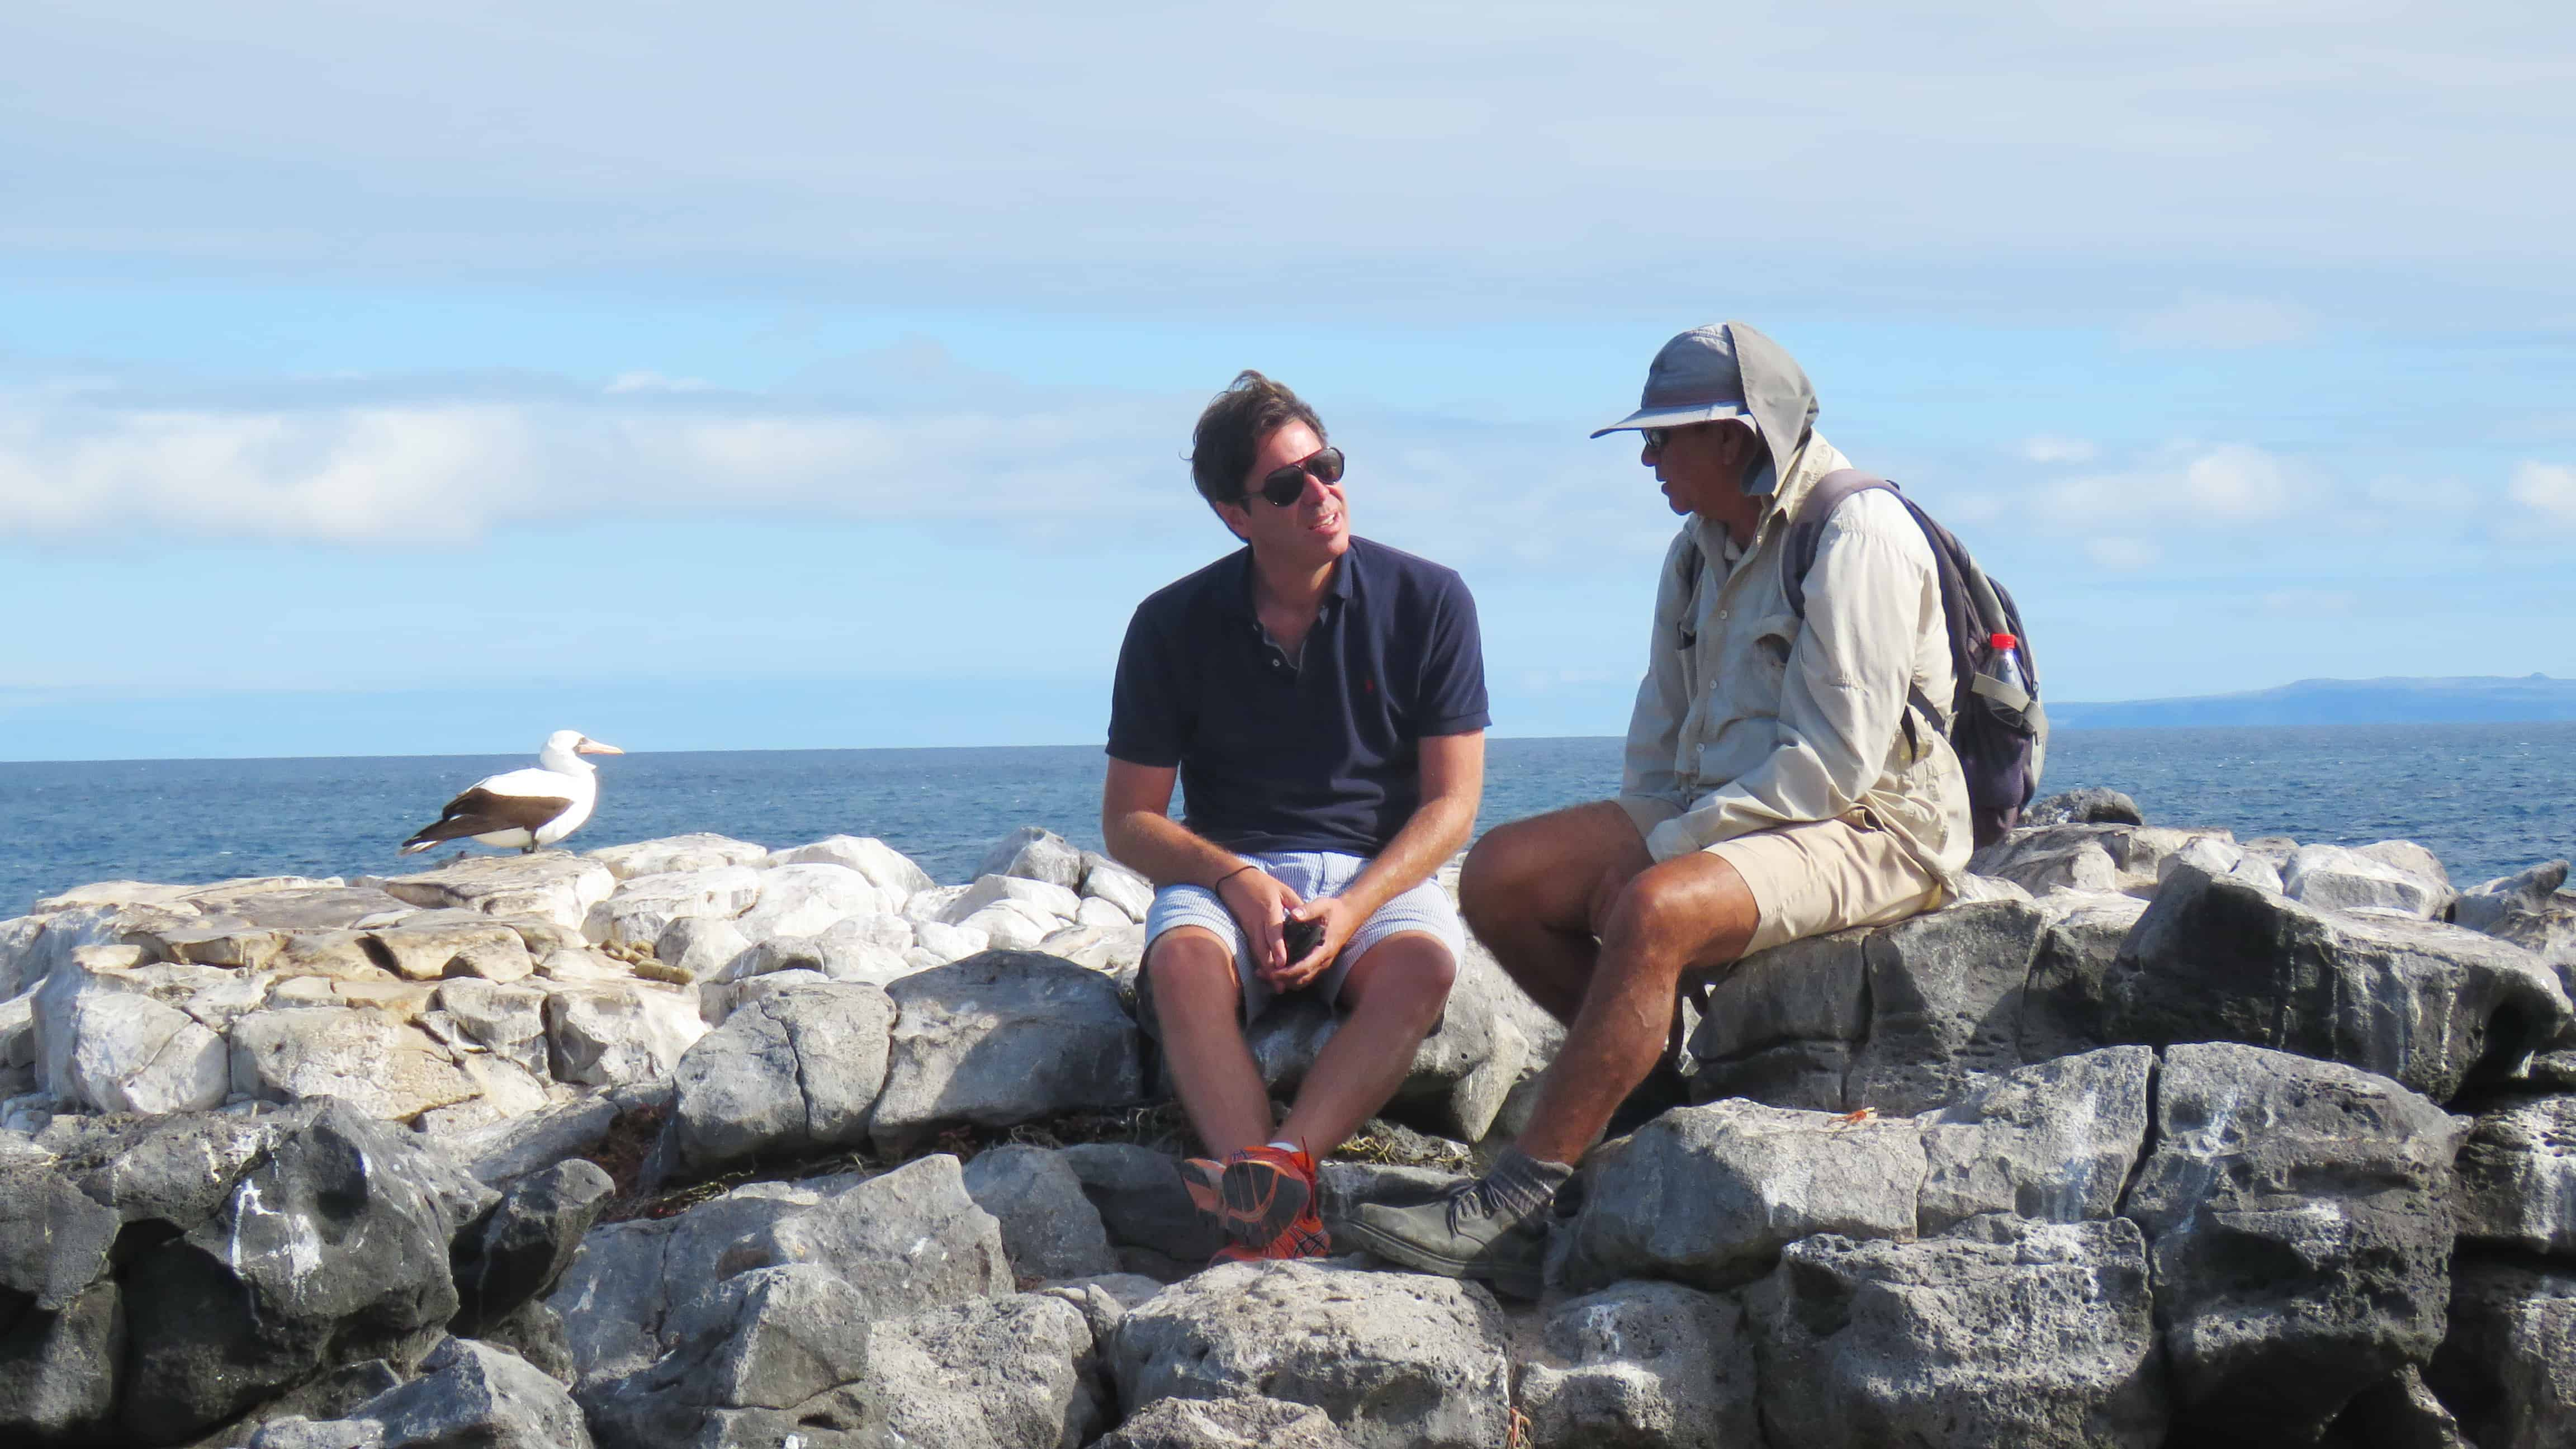 Naturalist and Cruise Guest Exploring the Galapagos Islands